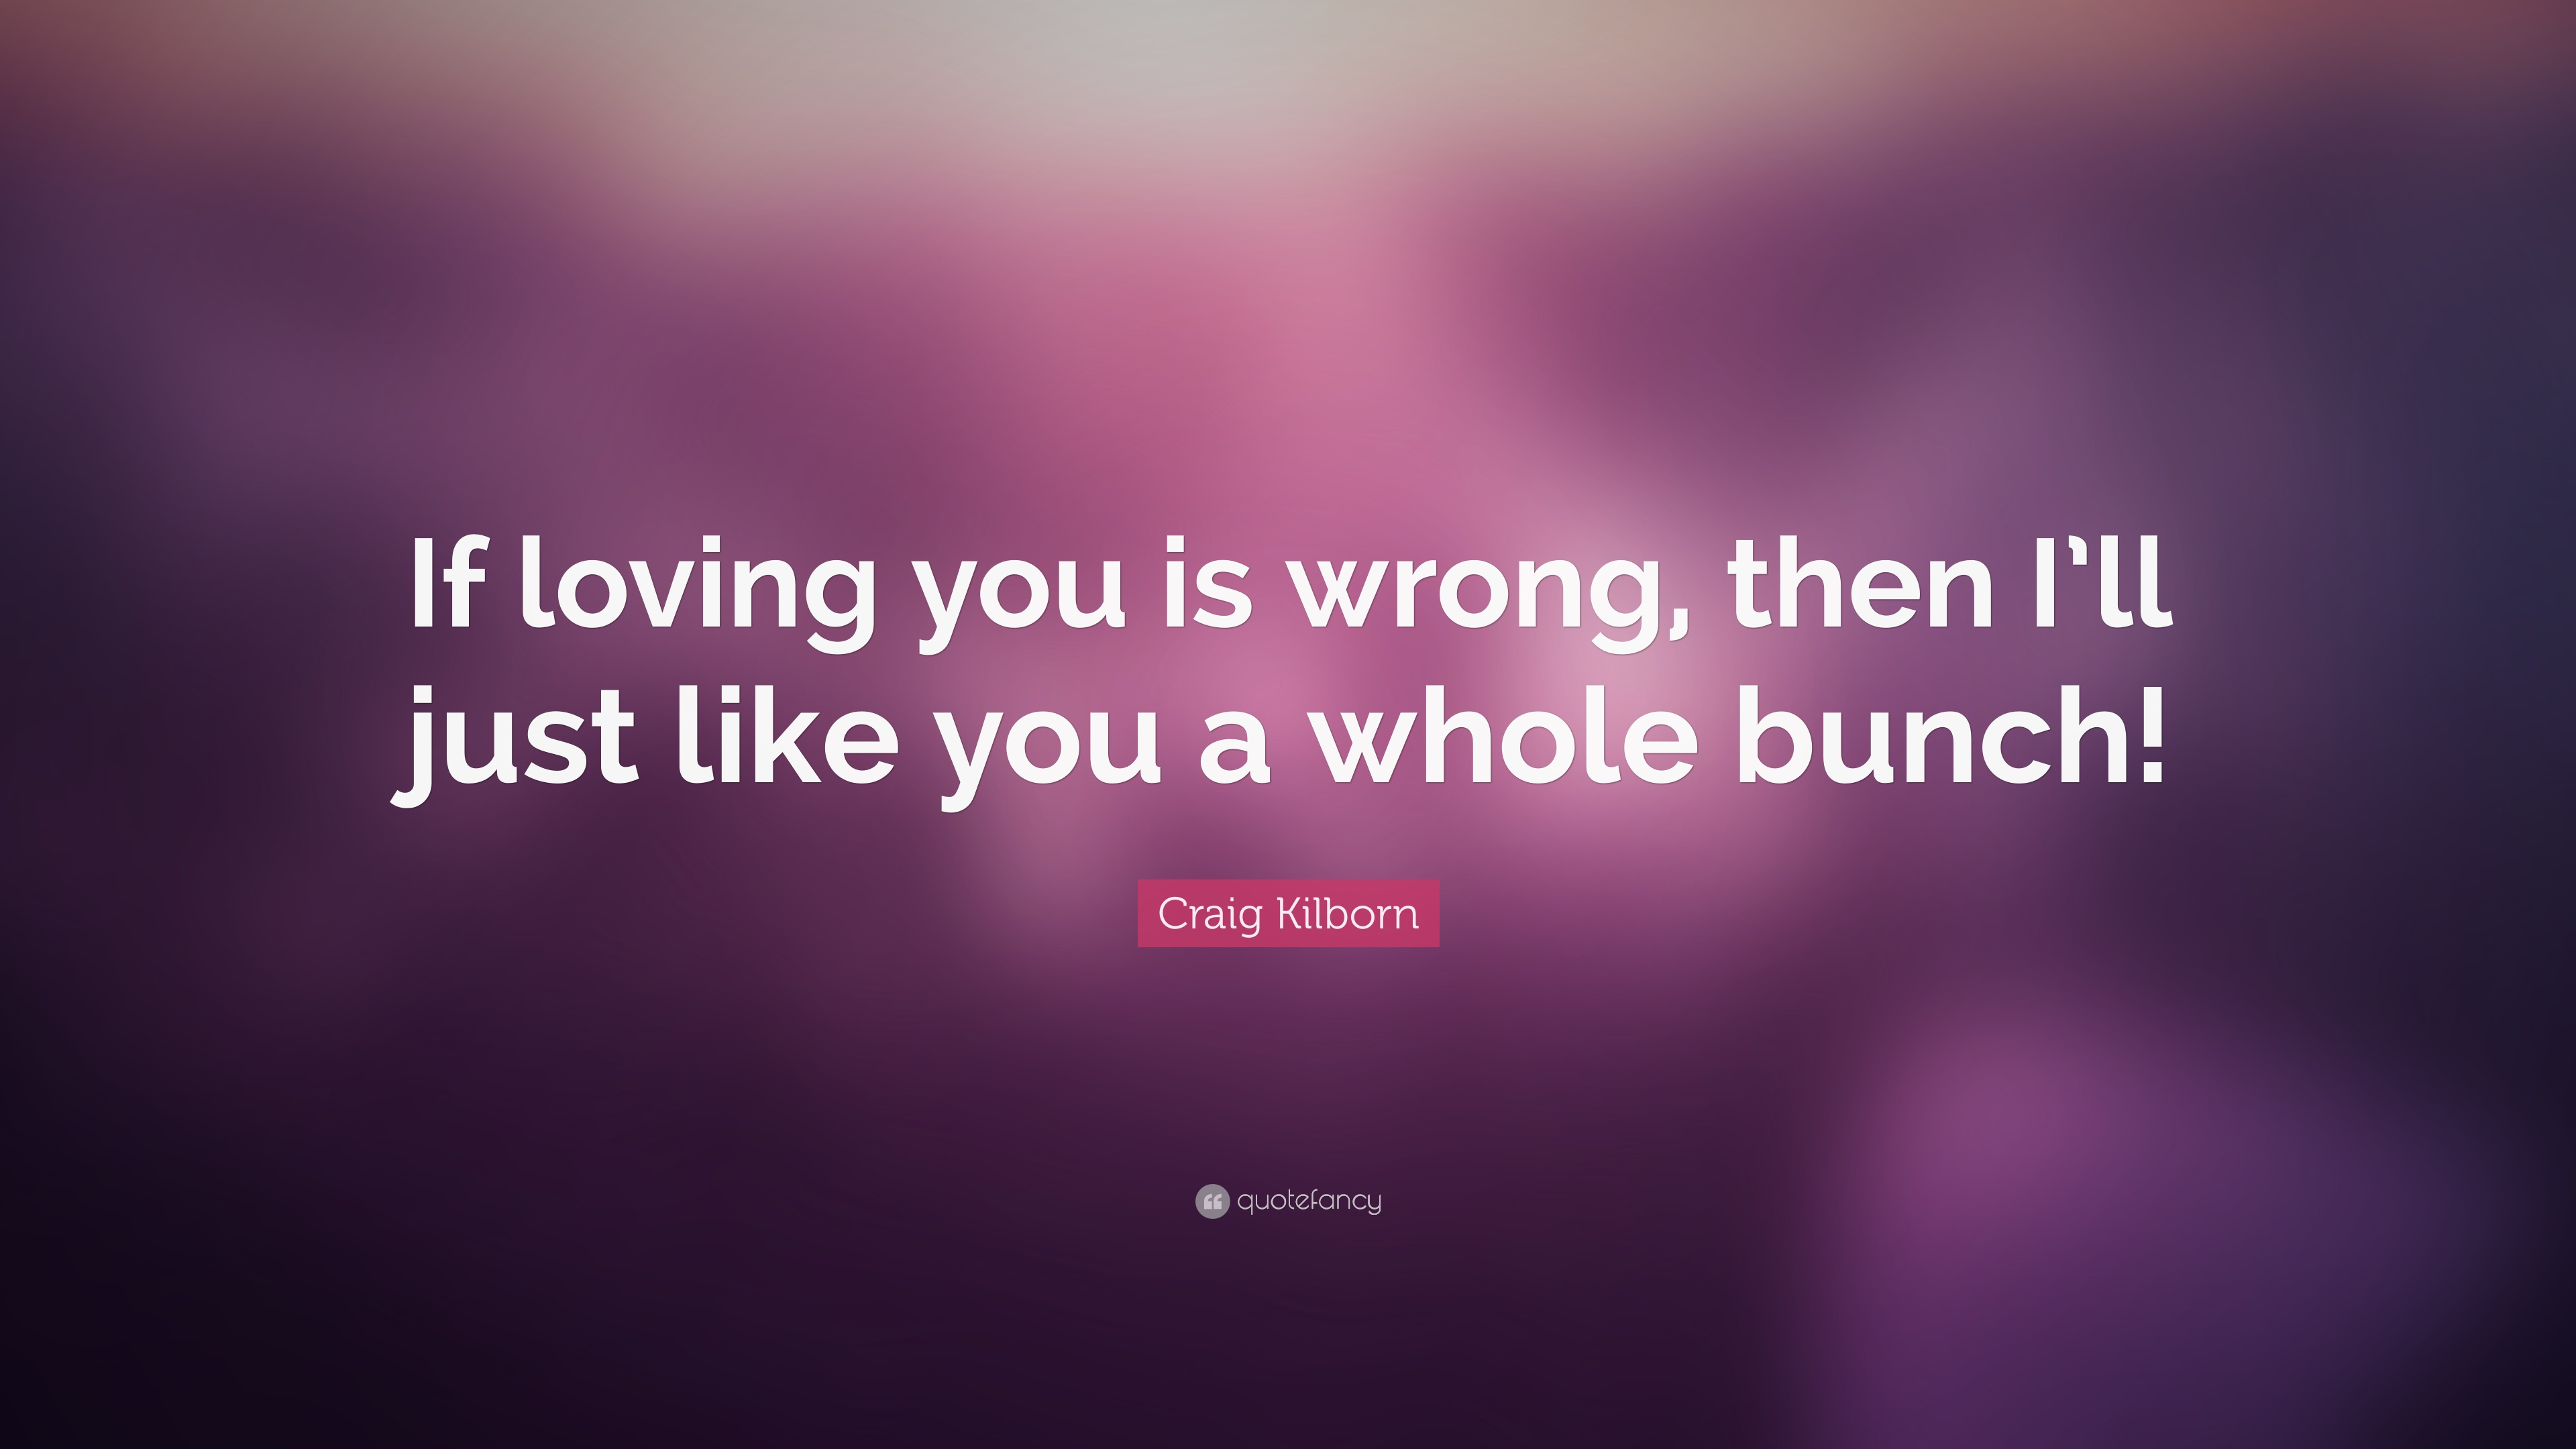 Craig Kilborn Quotes 64 Wallpapers Quotefancy